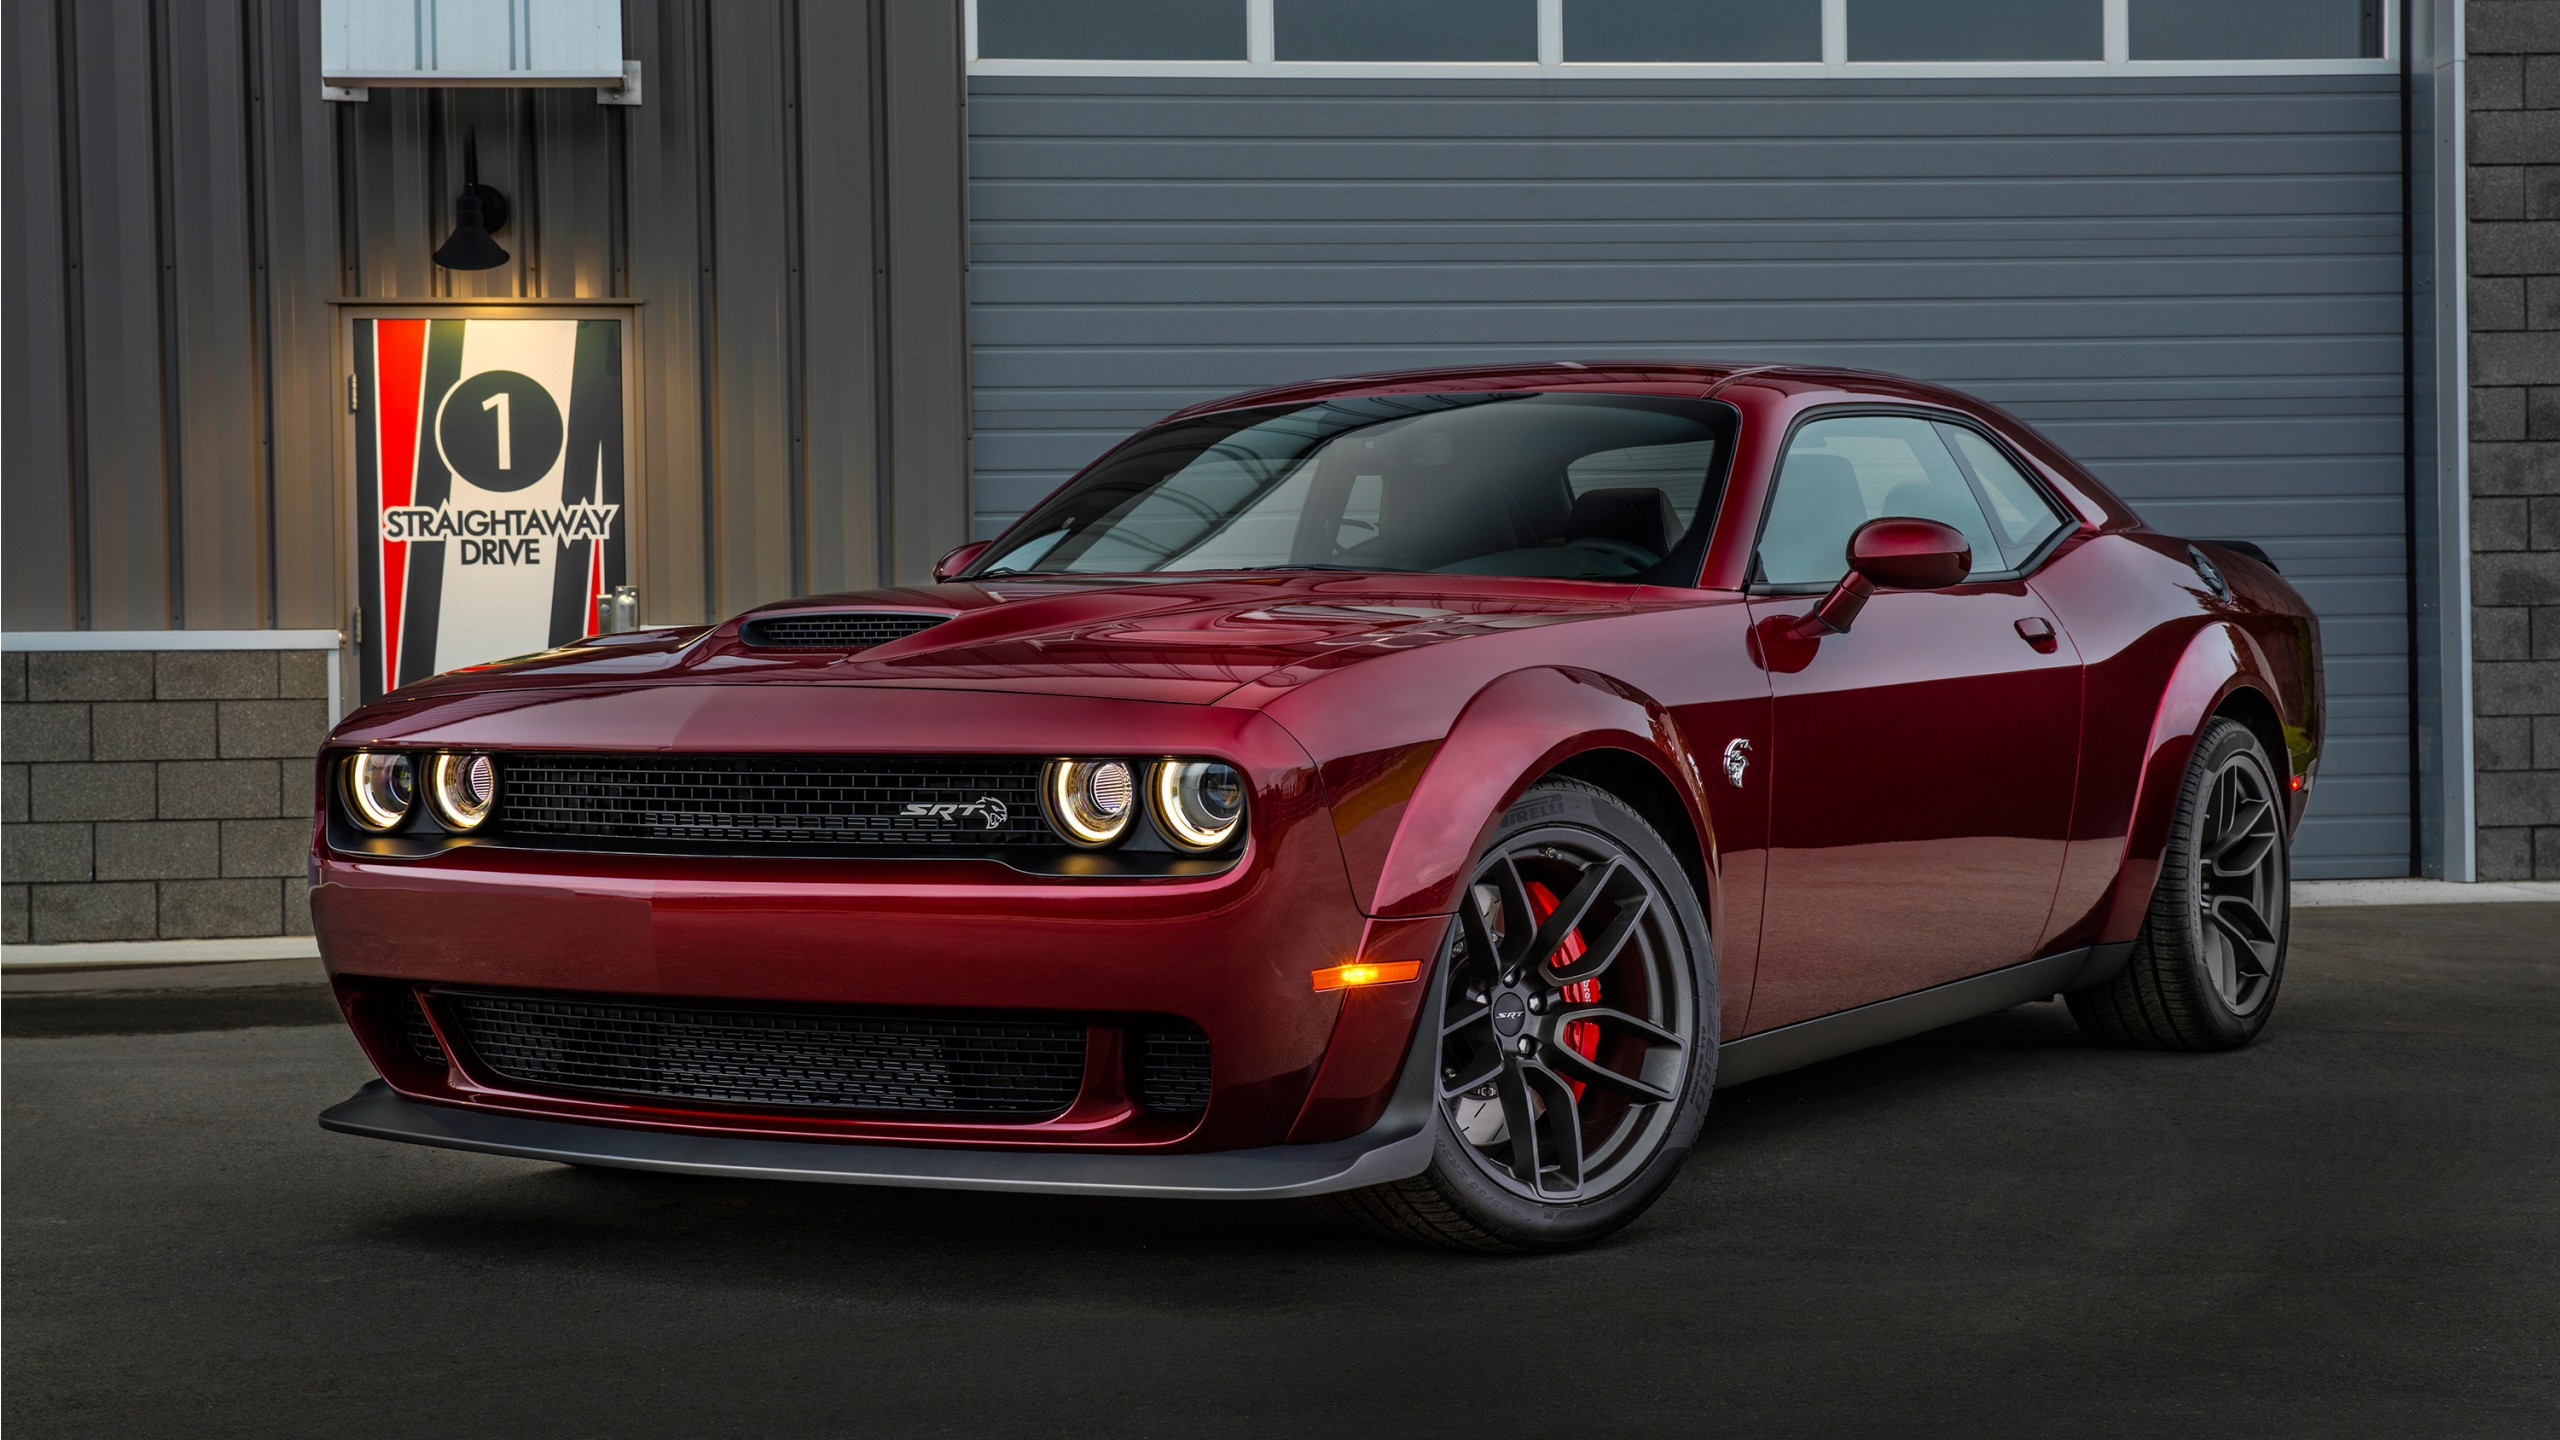 2017 Challenger Hellcat >> 2018 Dodge Challenger SRT Hellcat Widebody HD Wallpaper | HD Car Wallpapers | ID #7919